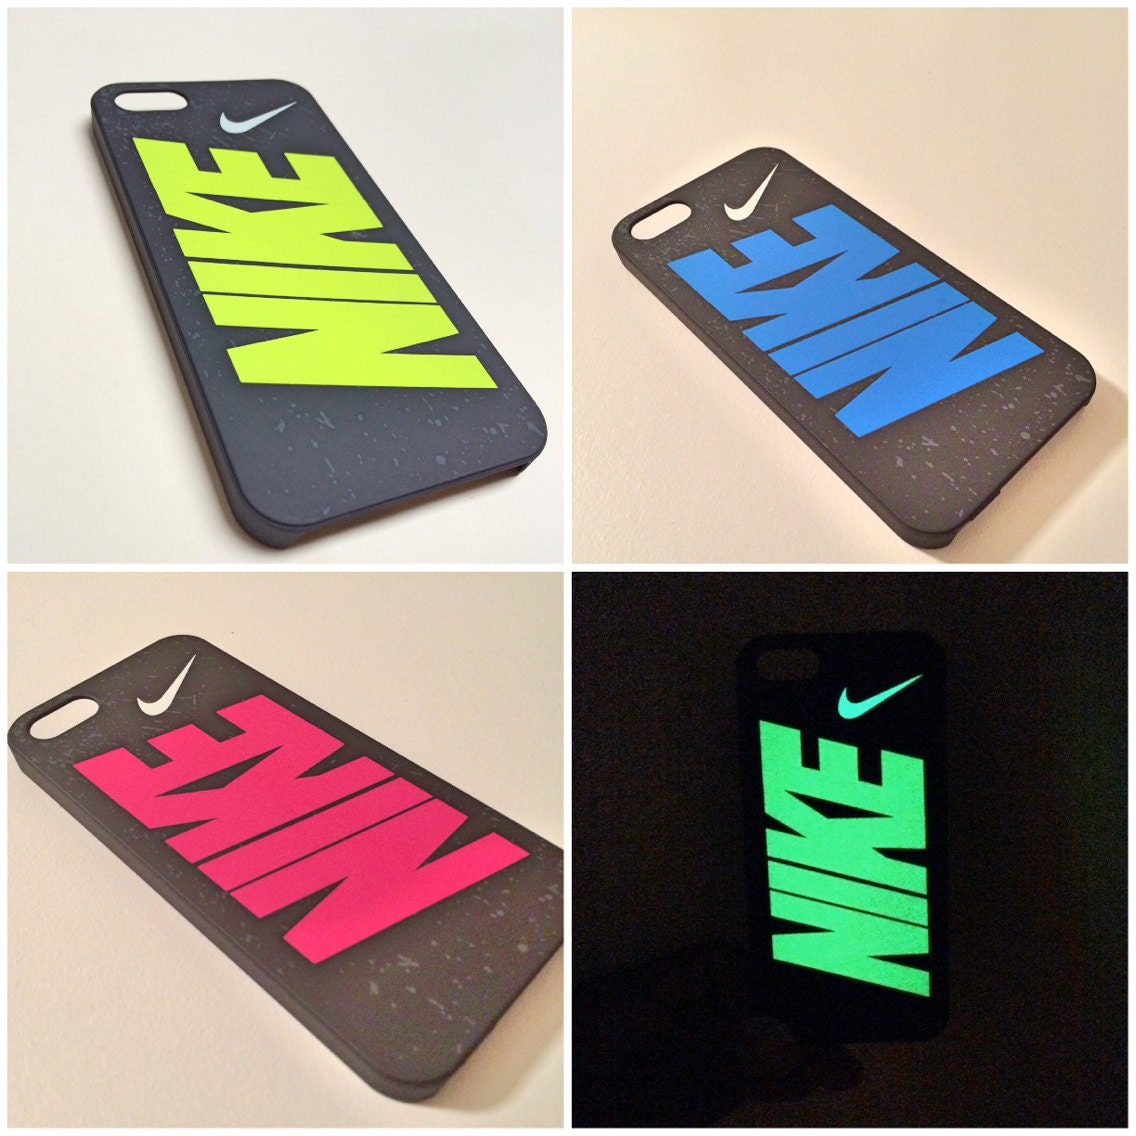 the nike case Nike phone case nike iphone case 7 plus x 8 6 6s 5 5s se nike samsung galaxy case s9 s9 plus note 8 s8 s7 edge s6 s5 s4 note gift art cover city logo.